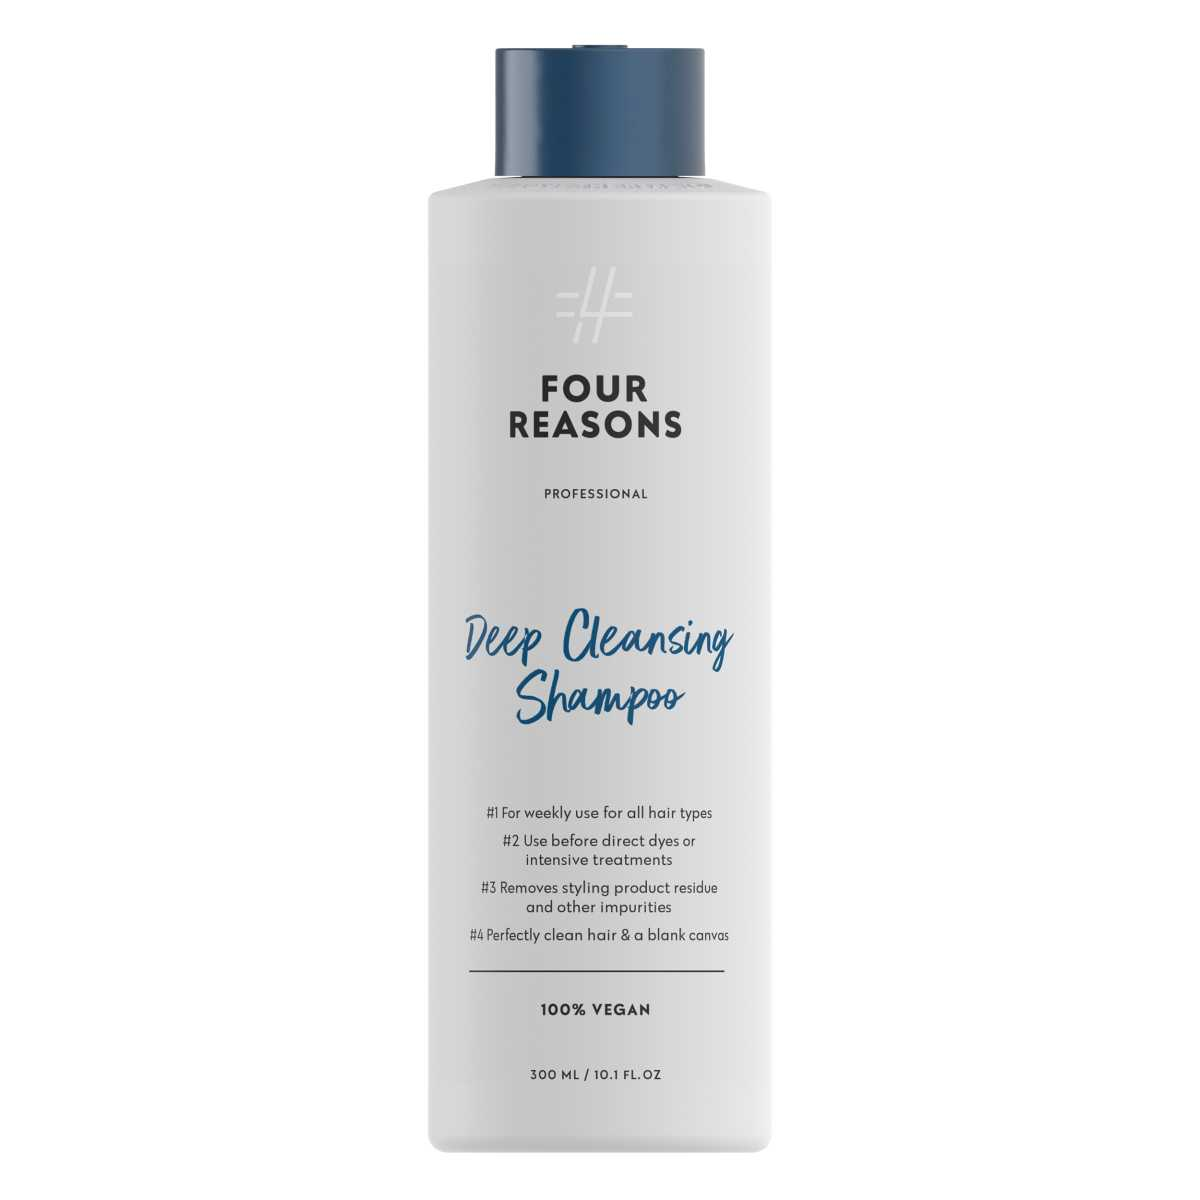 Four-Reasons-Professional-Deep-Cleansing-Shampoo